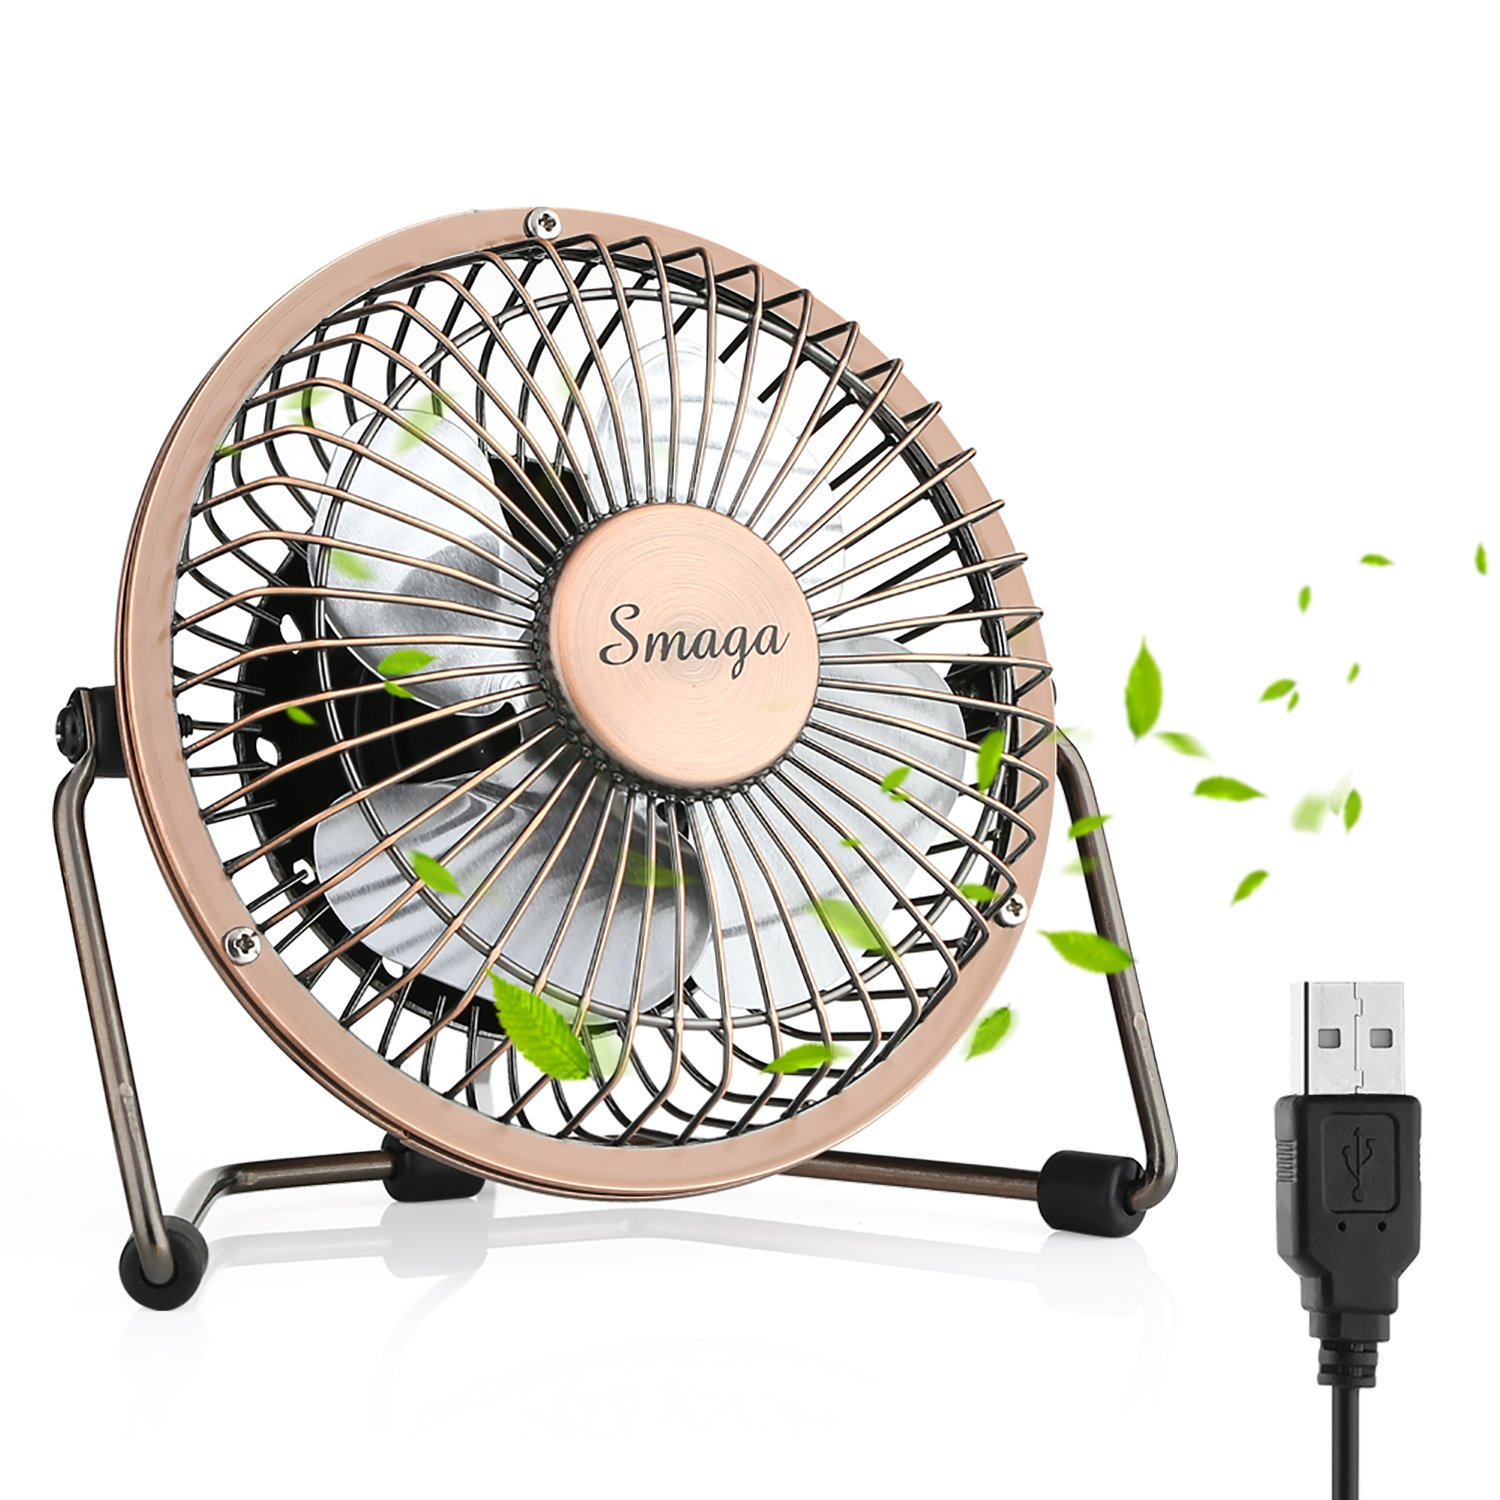 Mini USB Personal Desk Fan - 4'' & Metal & Retro & Quiet & Portable & Free Angle Rotation & ON/OFF Switch & Best for Home, Household, Table, Office, School, Outdoor Travel (Bronze) SMAGA